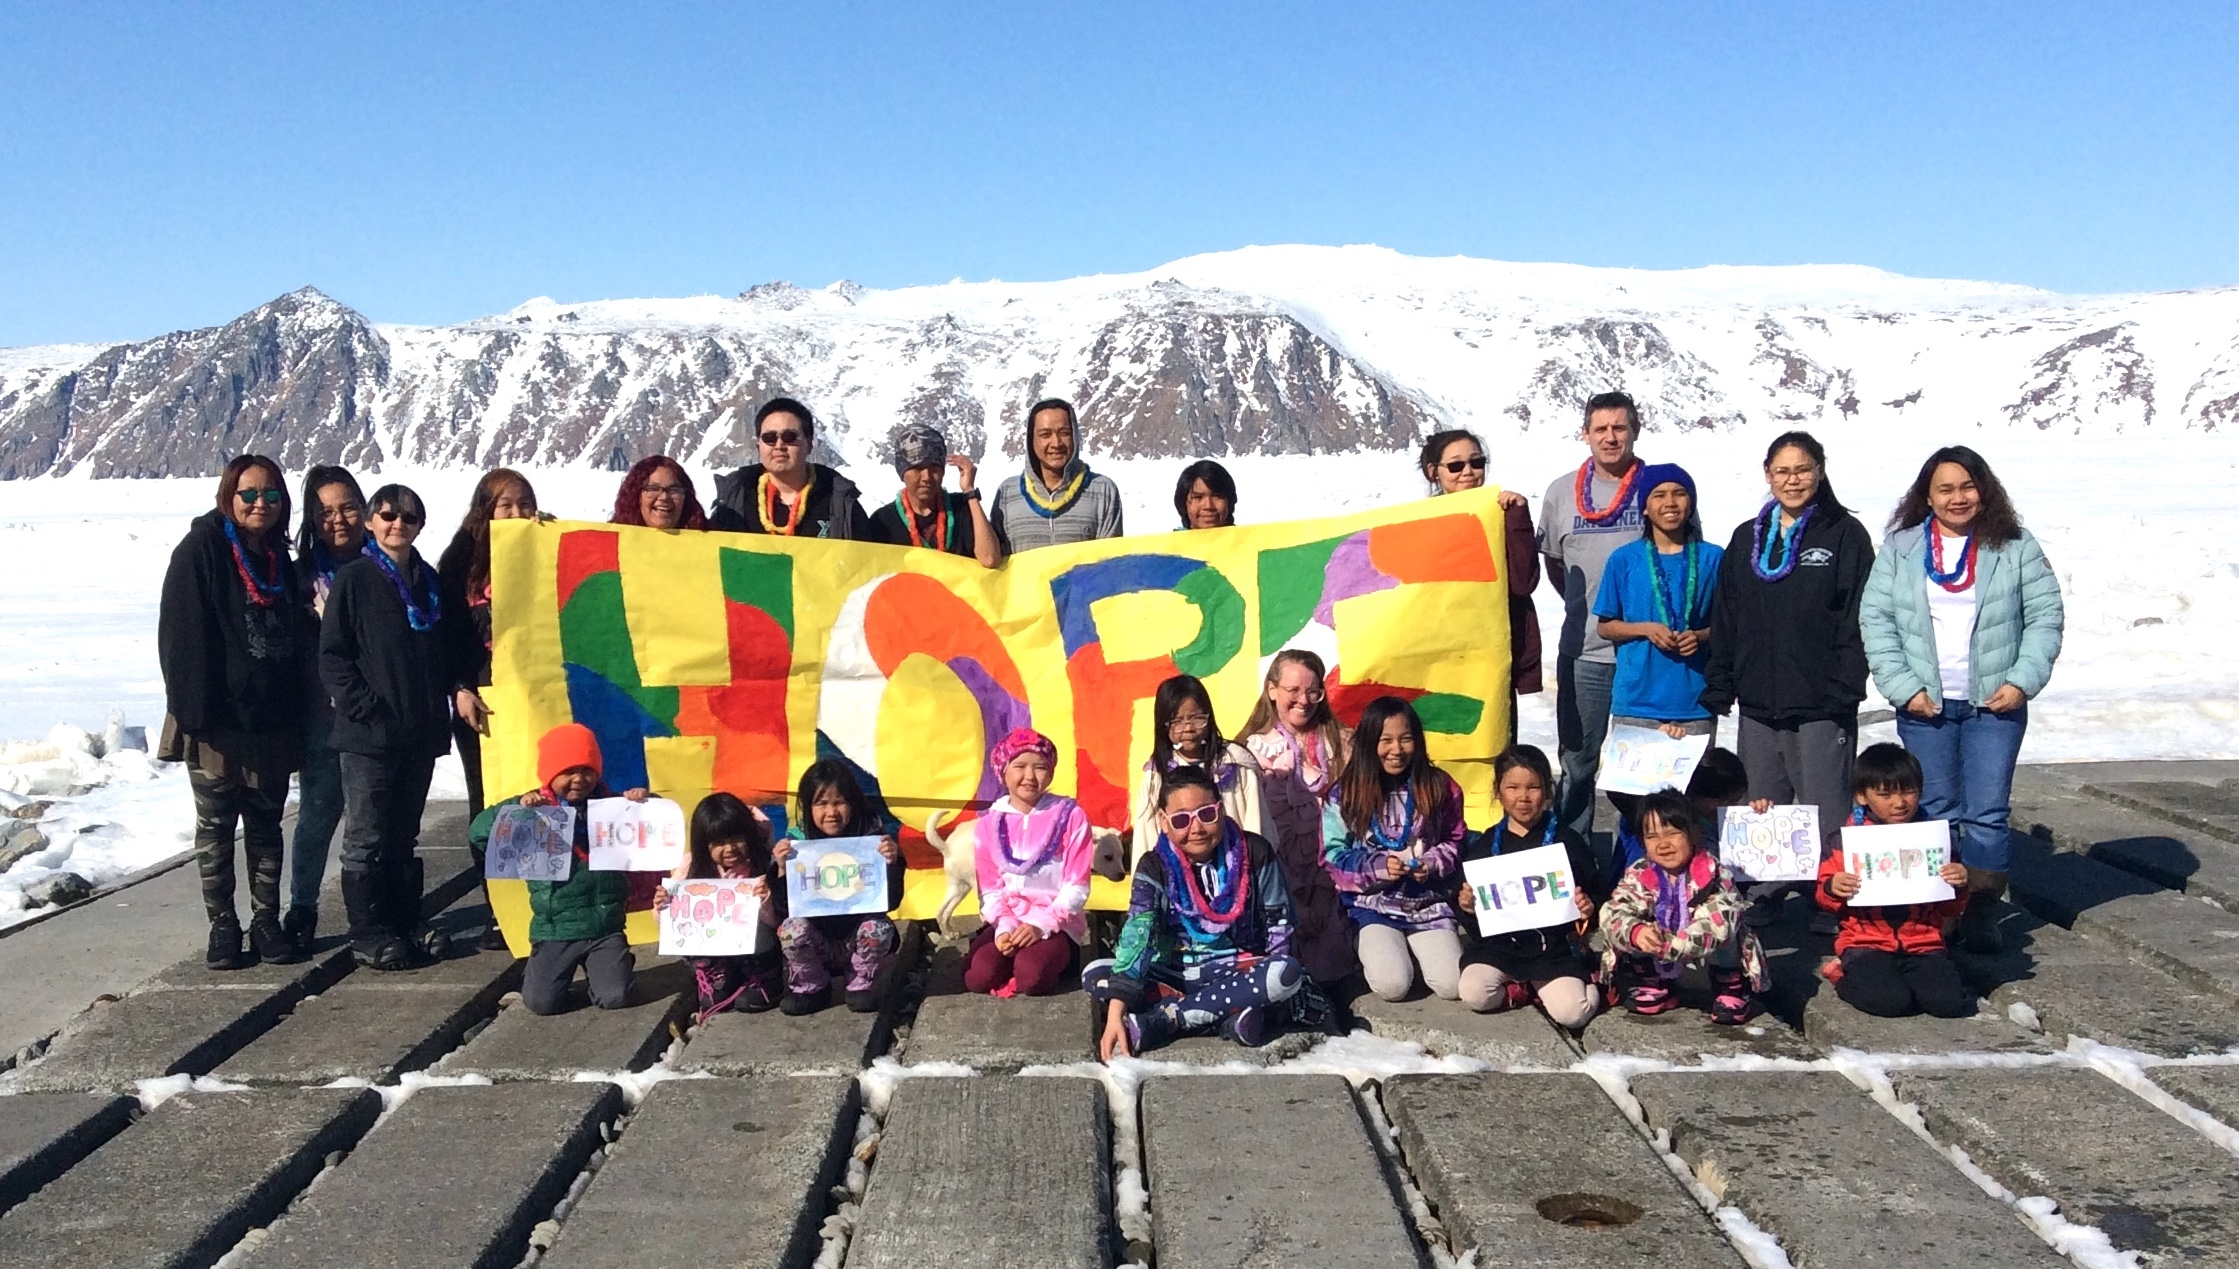 Diomede School Staff and Students with Hope sign